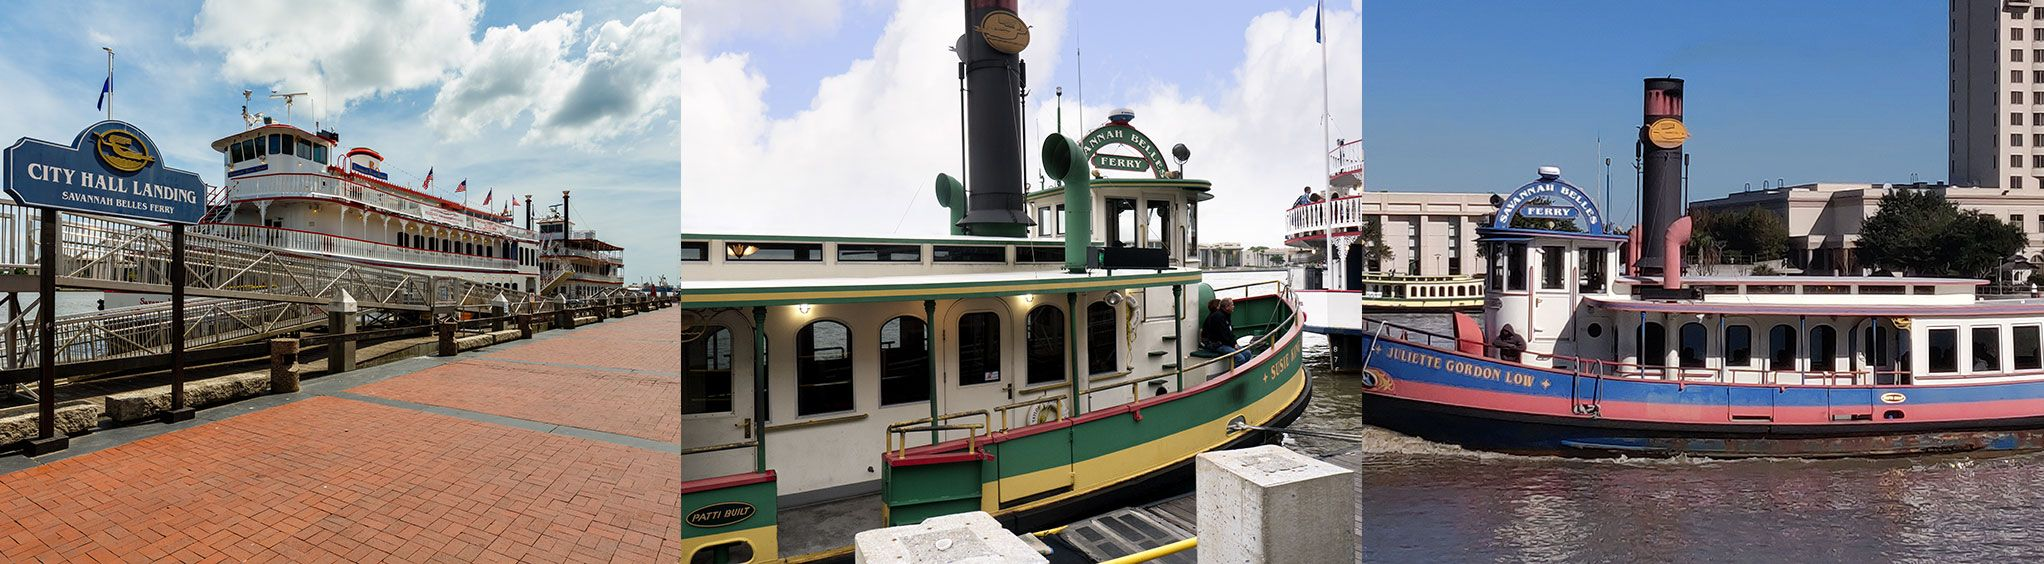 Boat Charters on the Savannah River in Savannah, GA